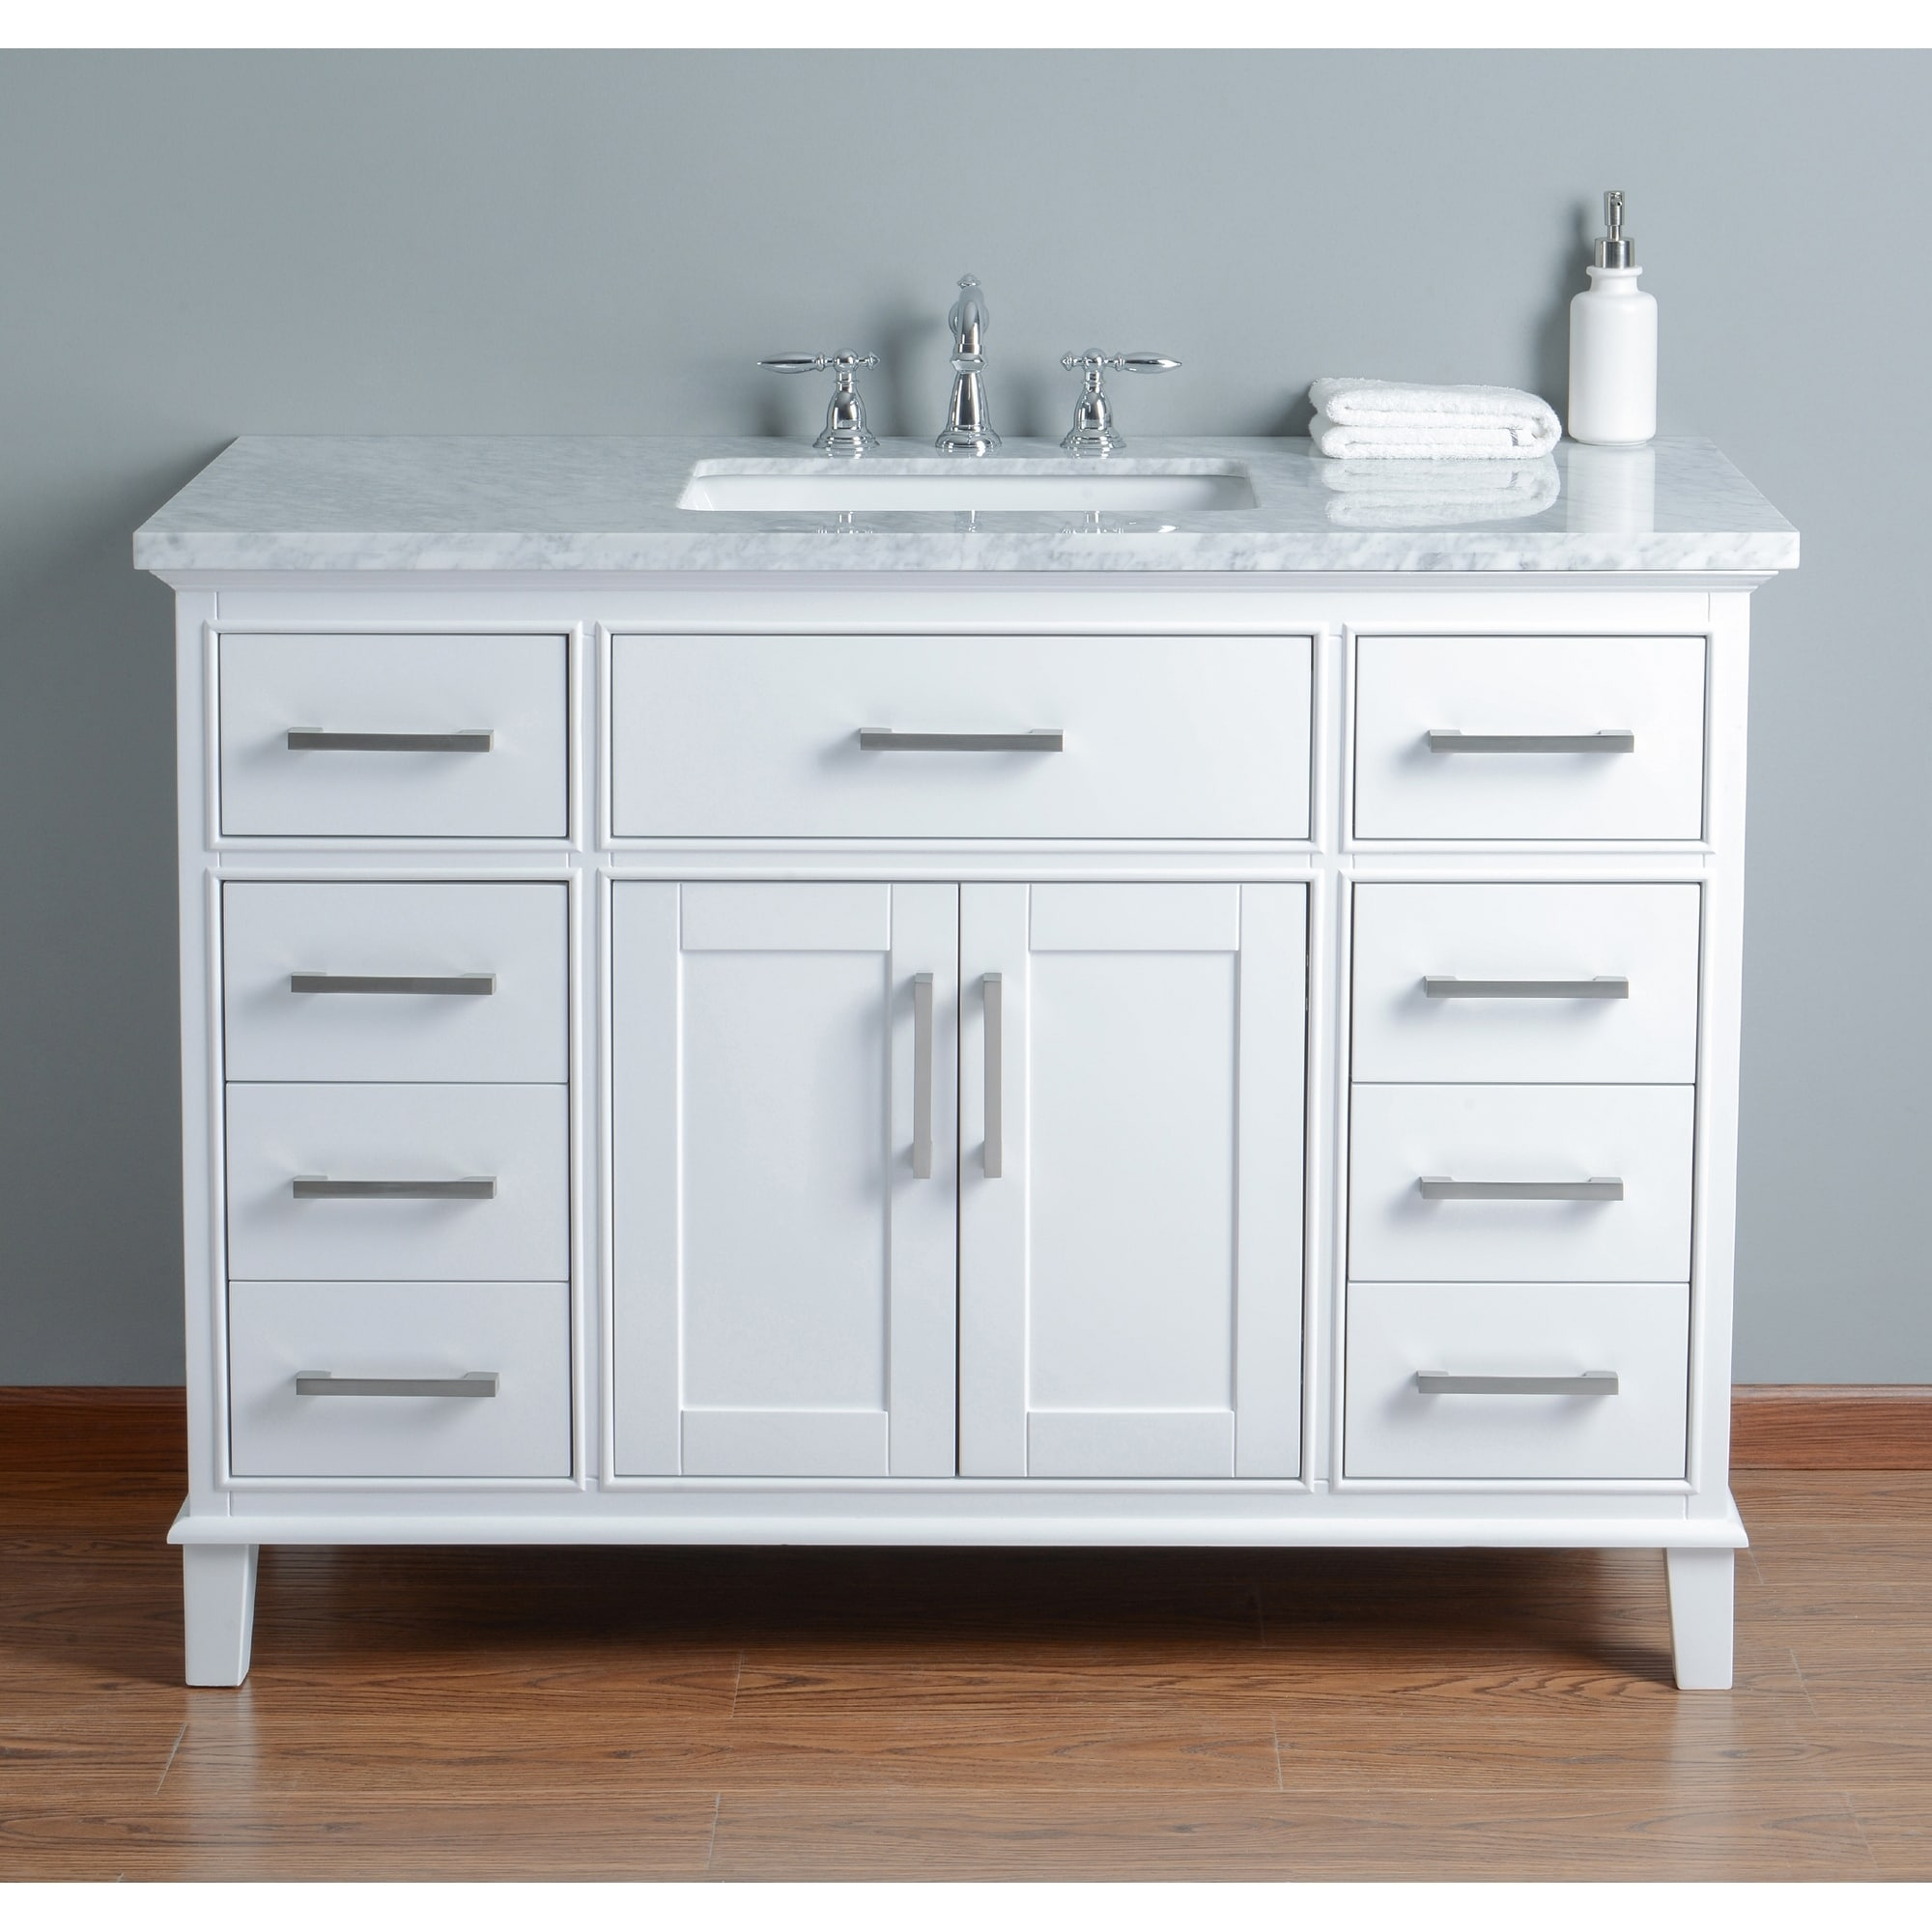 Buy Oak Bathroom Vanities & Vanity Cabinets Online at Overstock.com ...